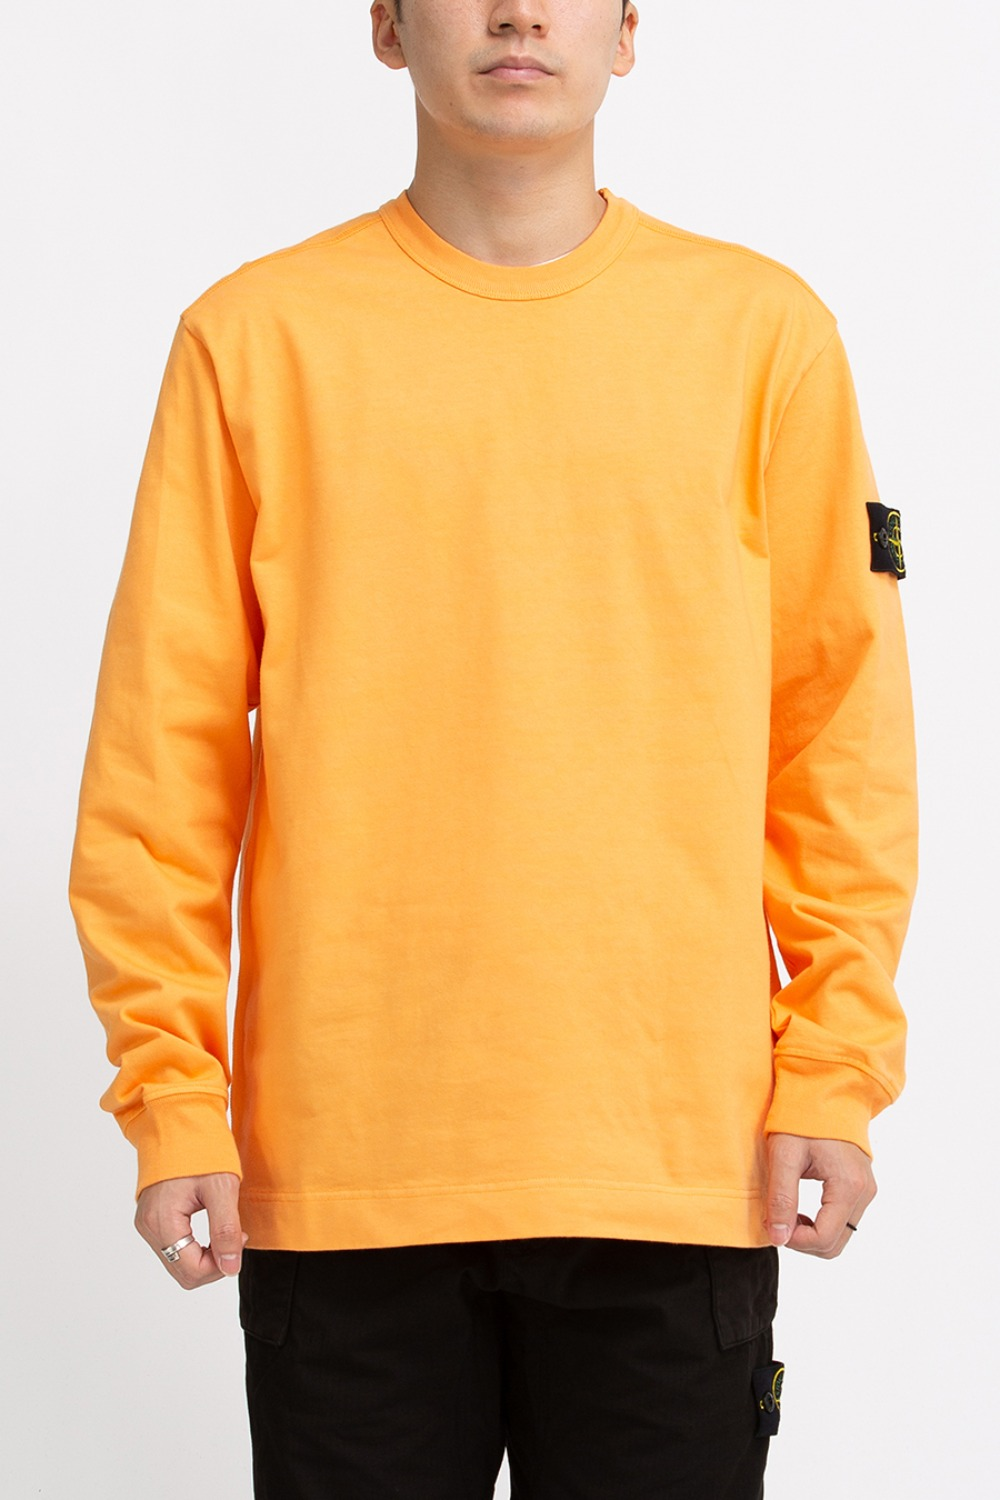 GARMENT DYED CREWNECK SWEATSHIRT ORANGE